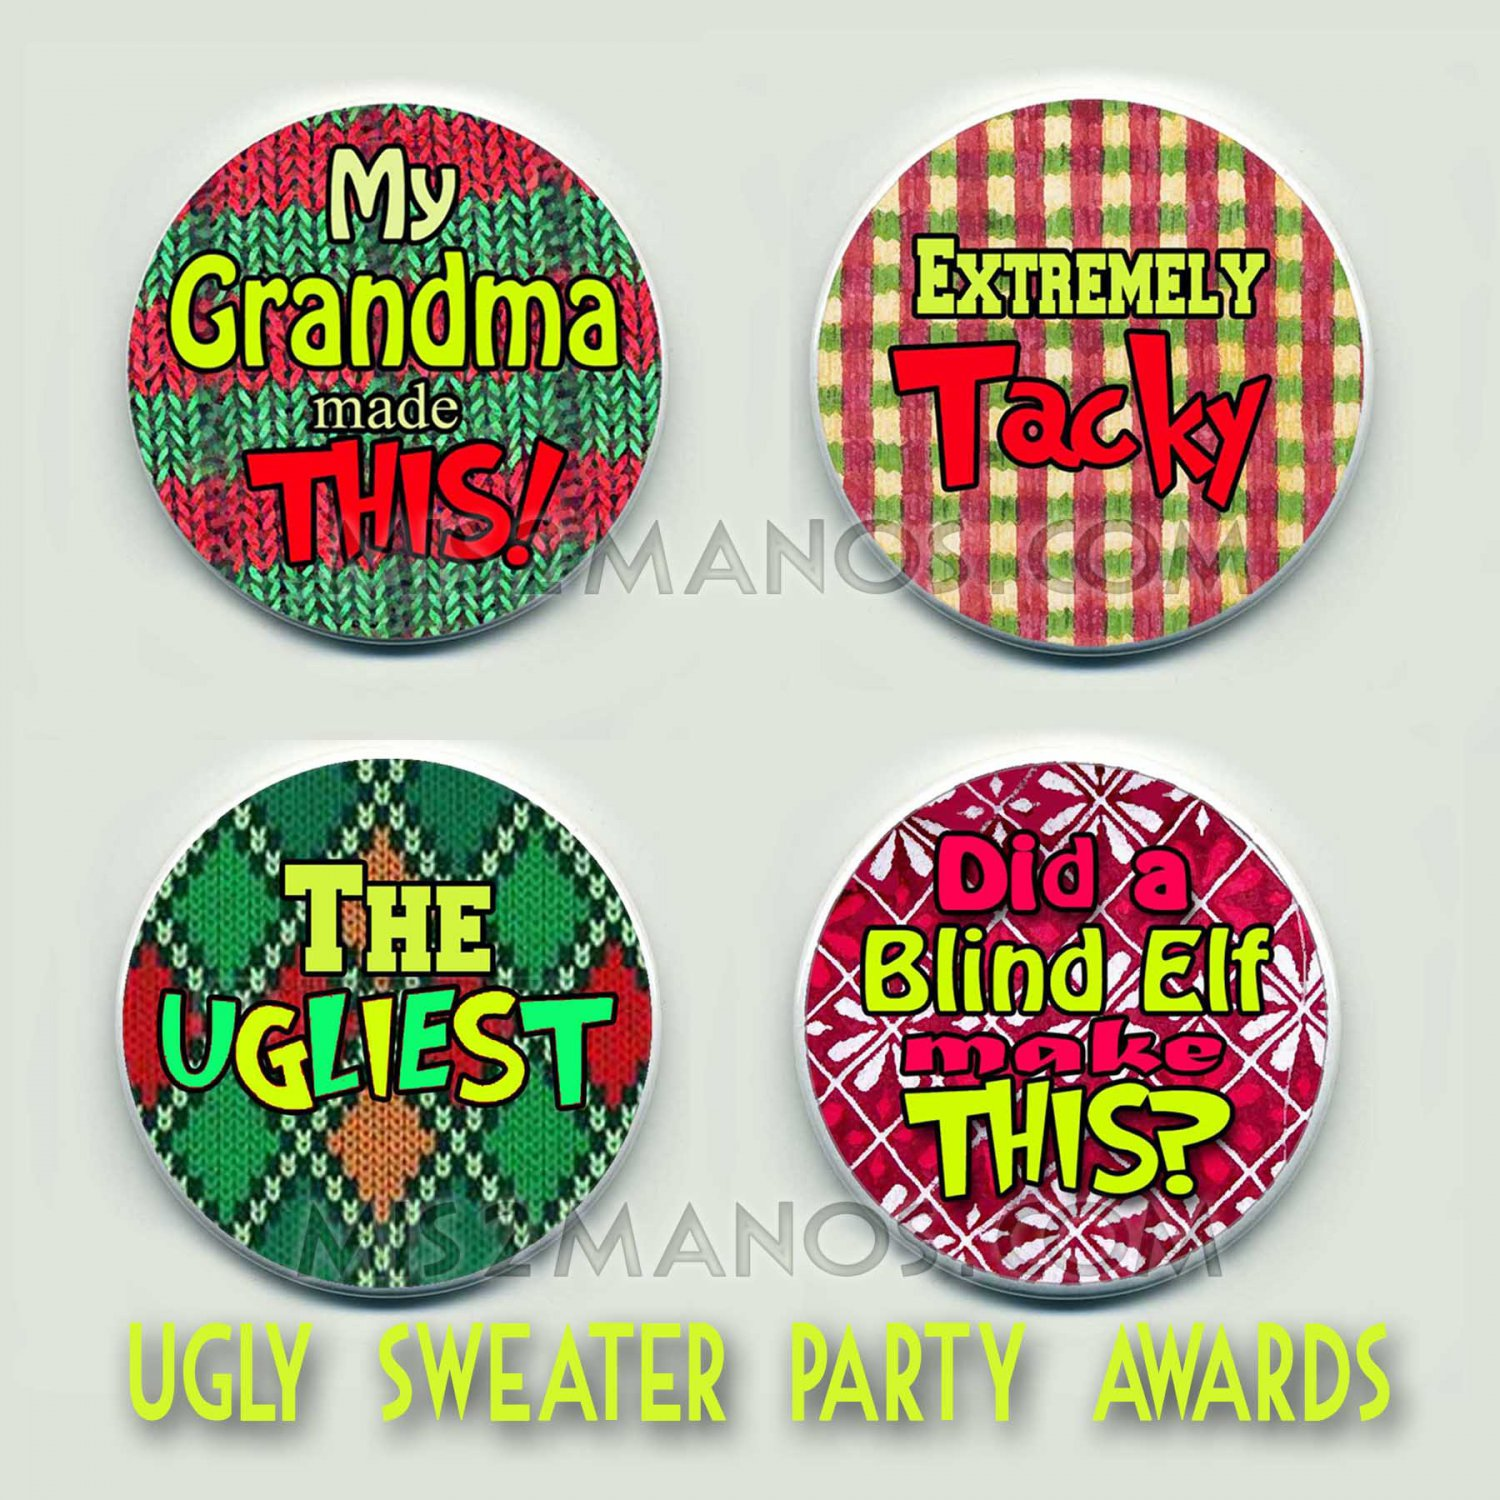 Ugly Christmas Sweater Party Award 2.25 inch Tacky Sweater Pinback SET of 4 buttons pins badges